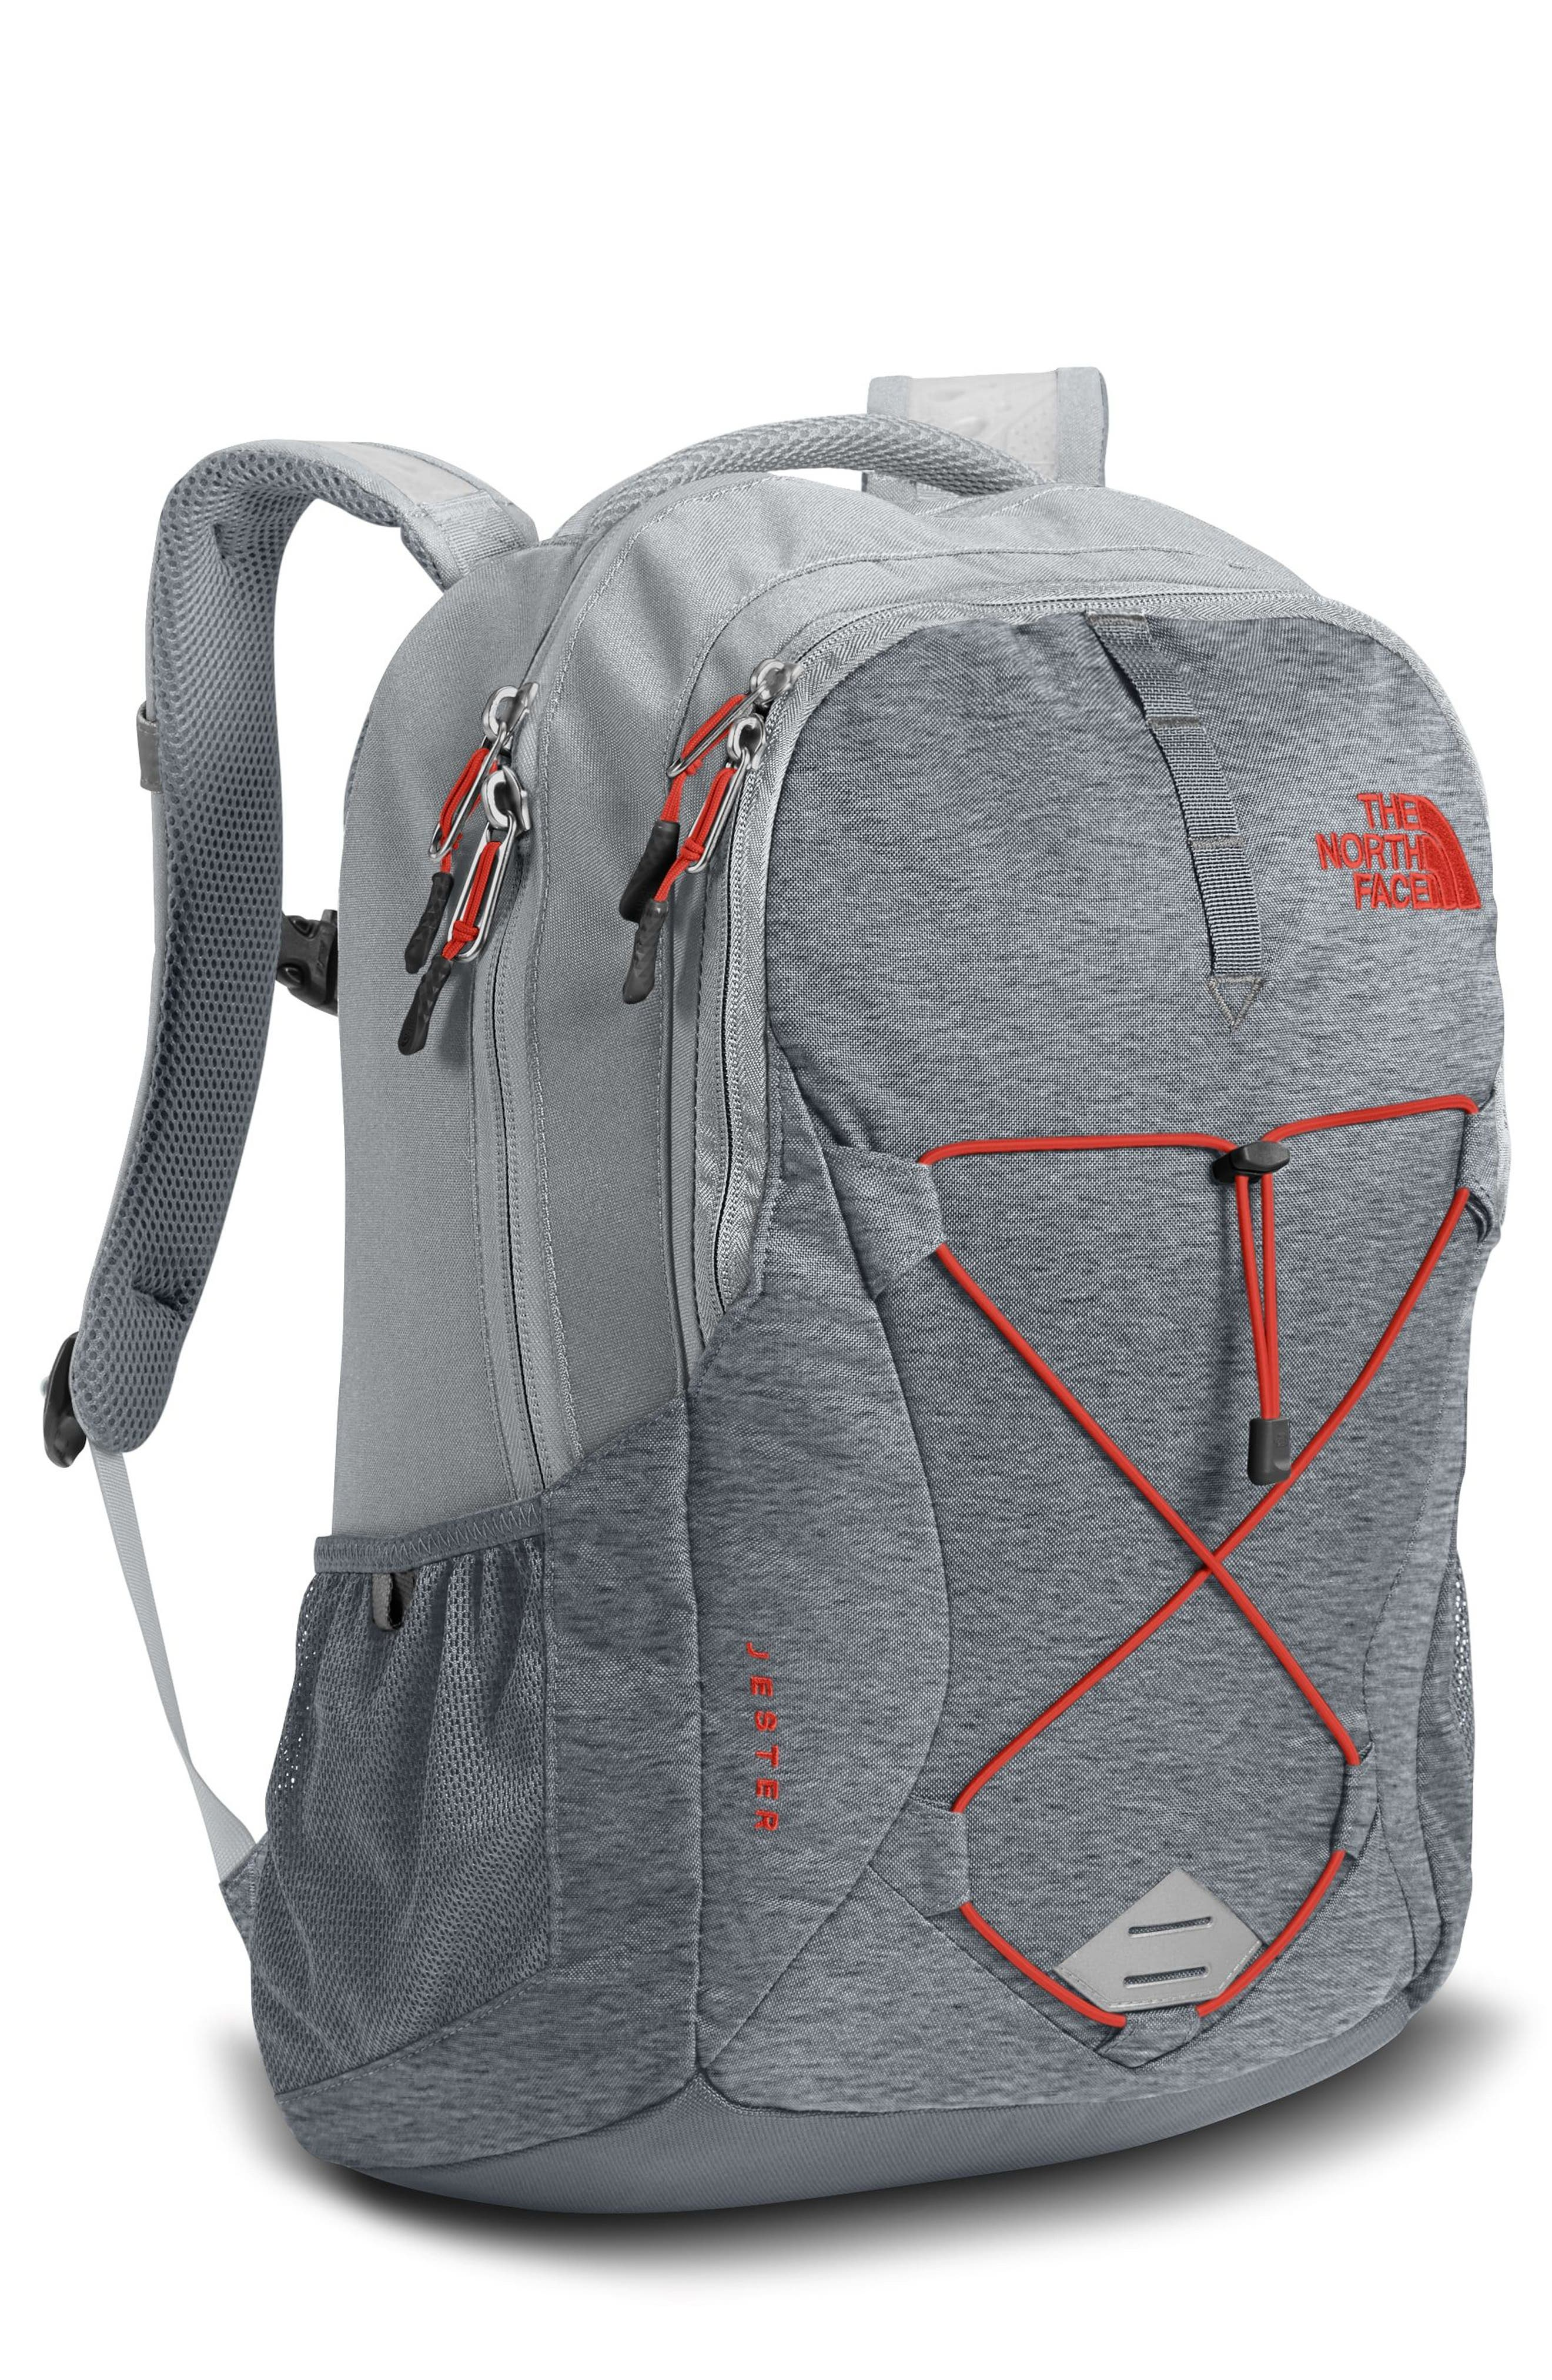 Jester Backpack,                             Main thumbnail 1, color,                             Grey Dark Hther/High Rise Grey